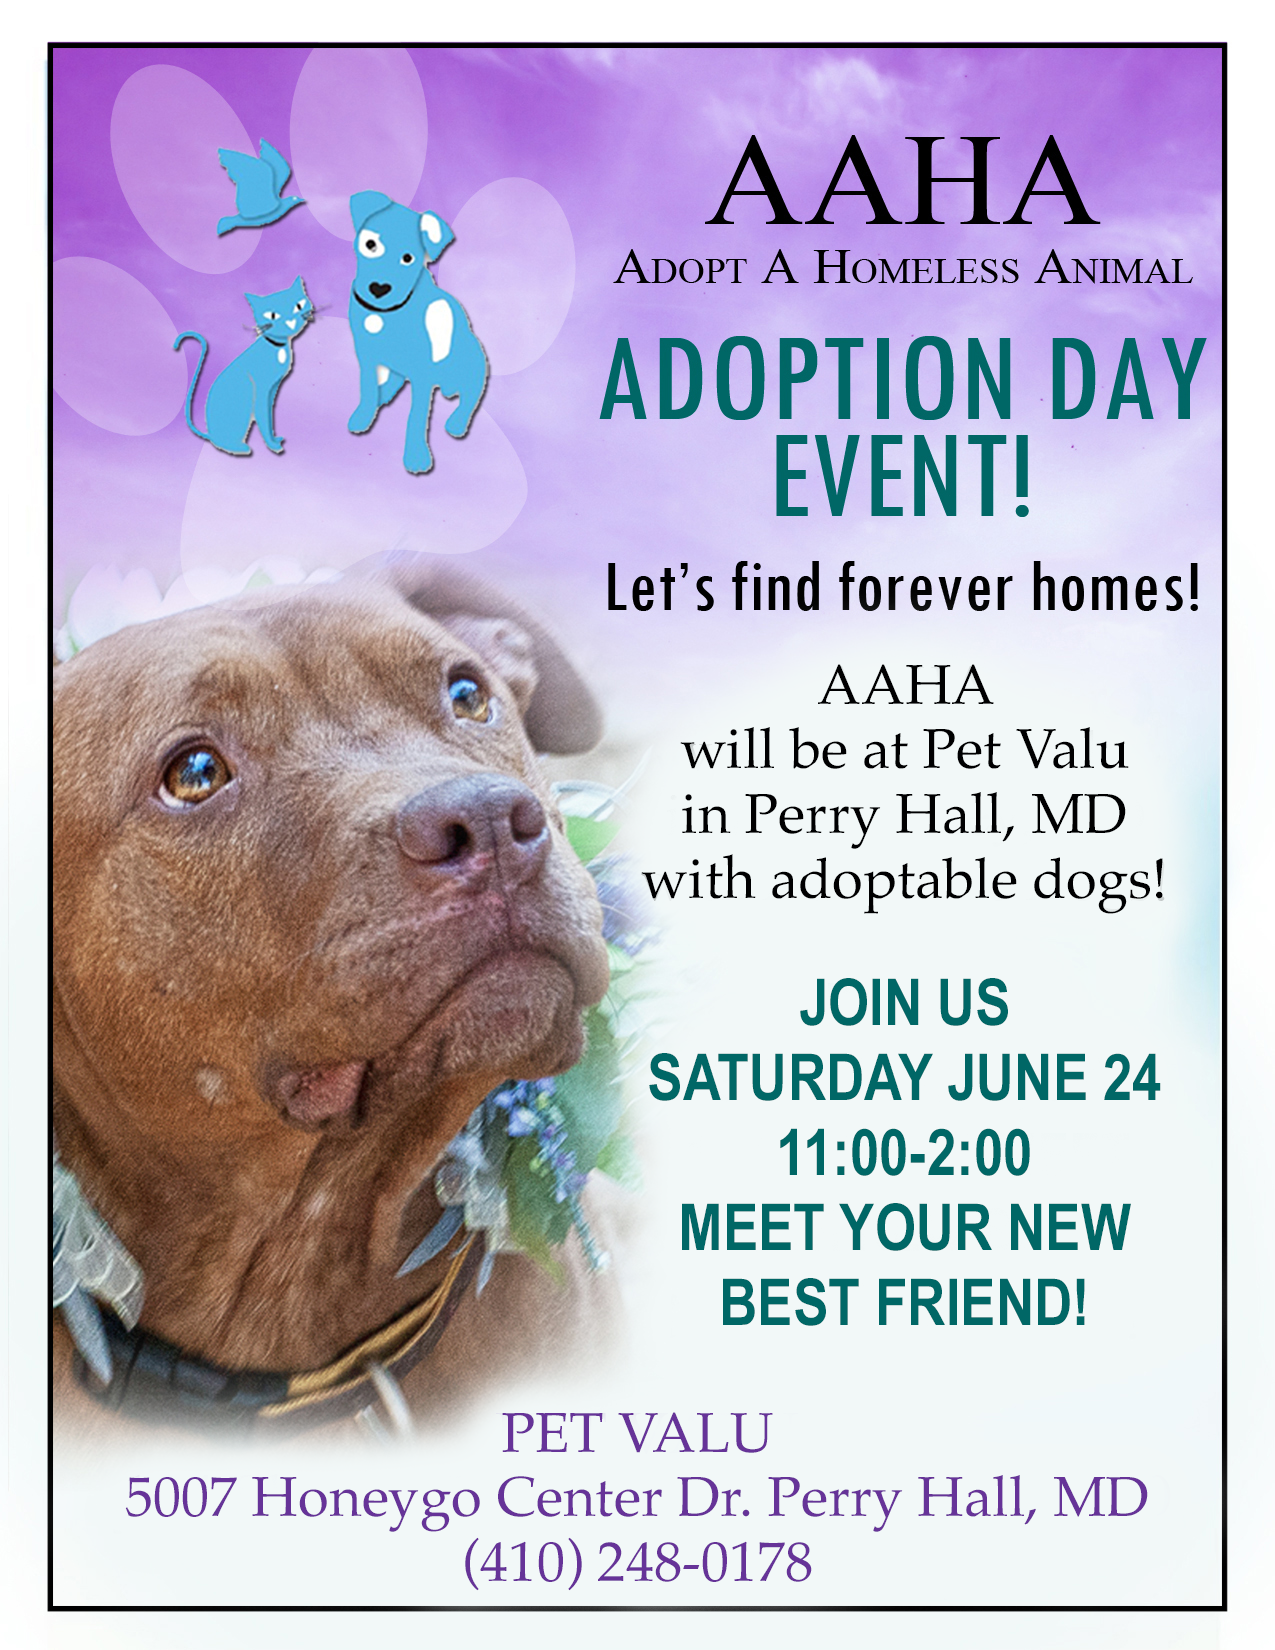 Pet Valu flyer